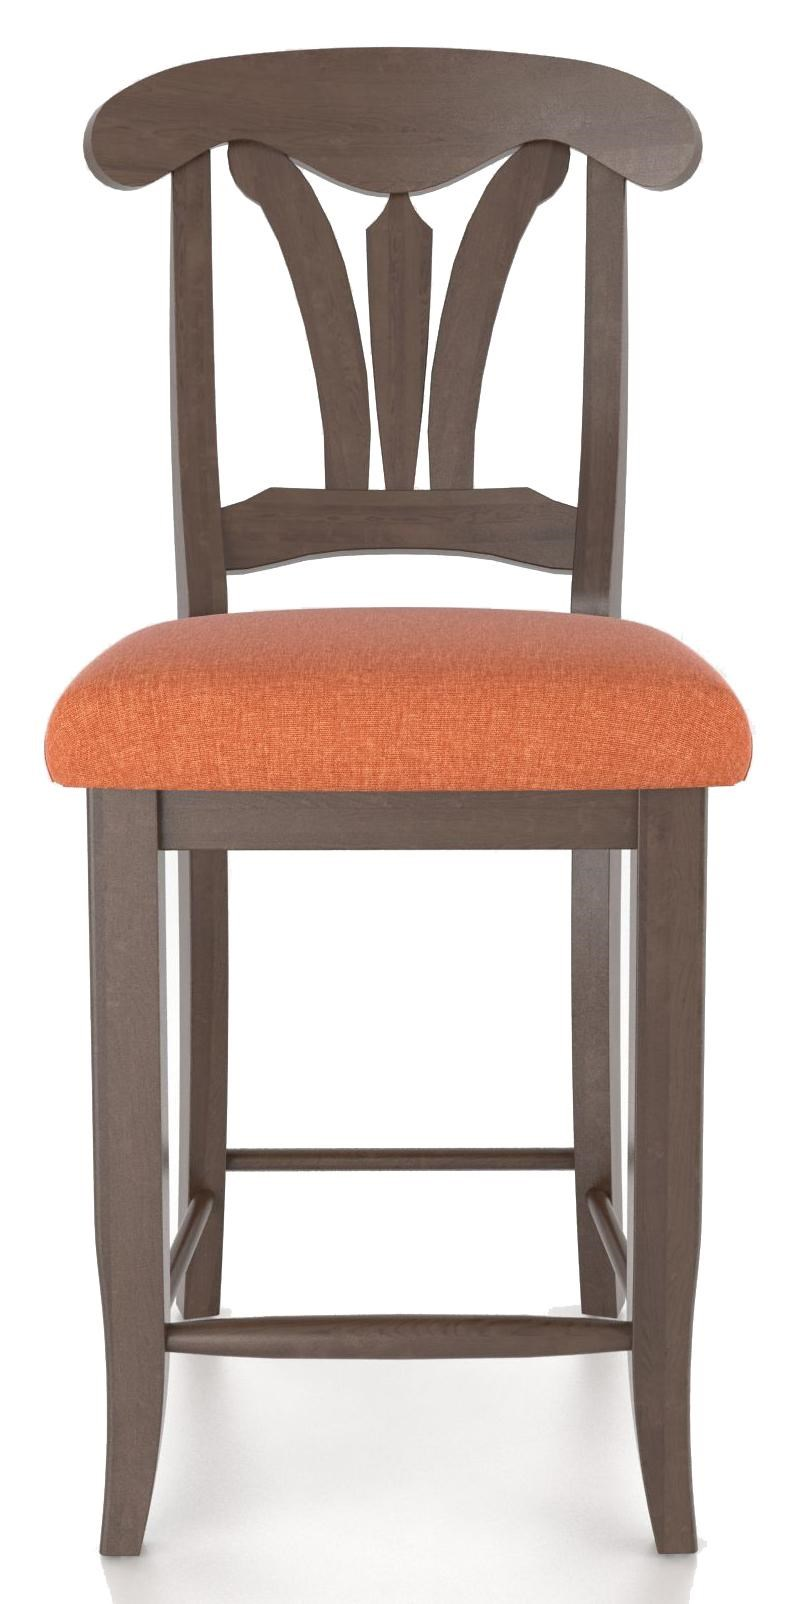 Canadel Bar Stools Customizable 24quot Upholstered Fixed  : products2Fcanadel2Fcolor2Fbar20stools20stosto01261tg29mnlf b0jpgscalebothampwidth500ampheight500ampfsharpen25ampdown from www.wilsonhomefurnishings.com size 500 x 500 jpeg 22kB